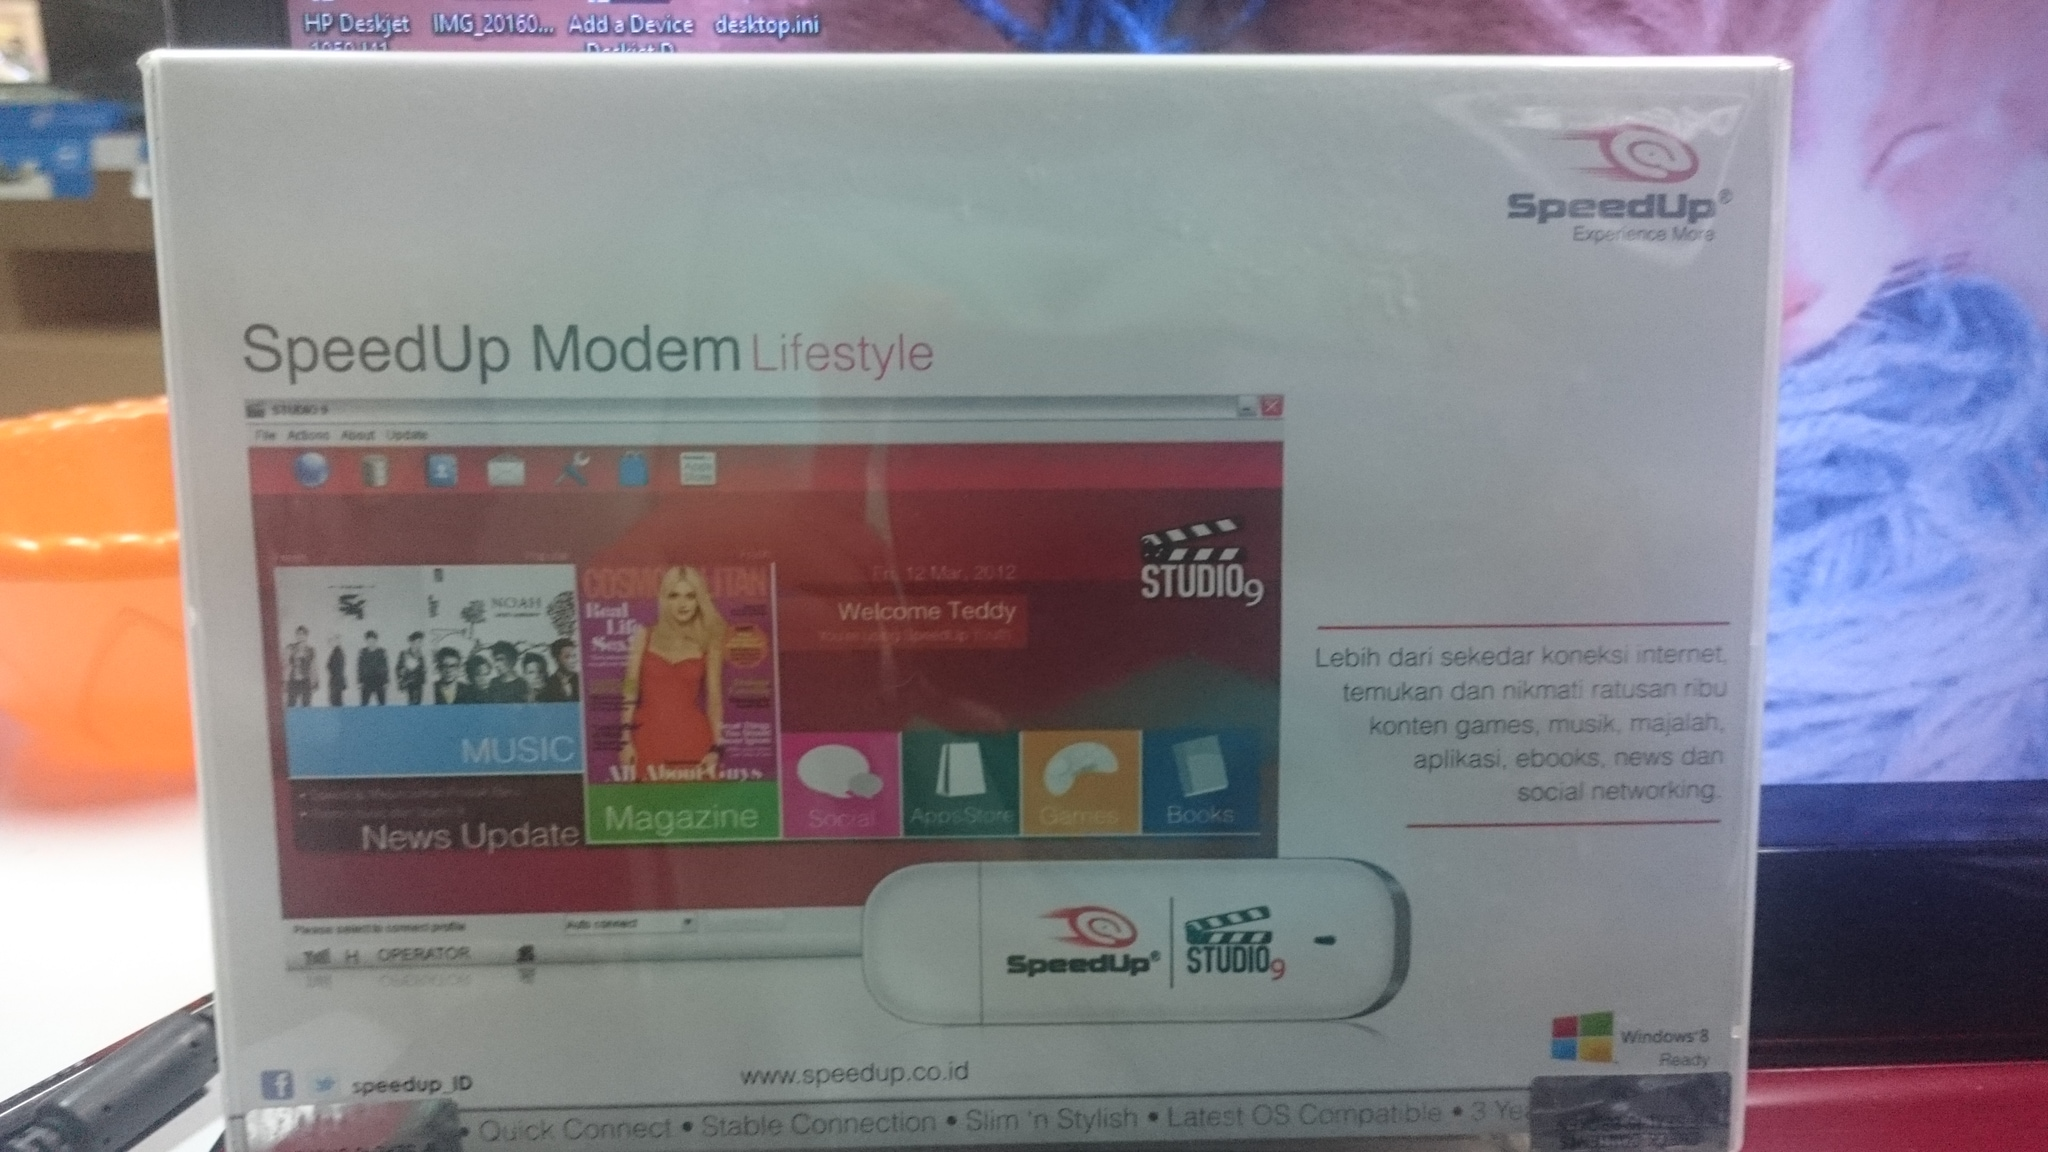 Speedup Tv Internet Box Euphoria Putih Daftar Harga Terlengkap Speed Up Router 8810 Free Modem Evdo Jual